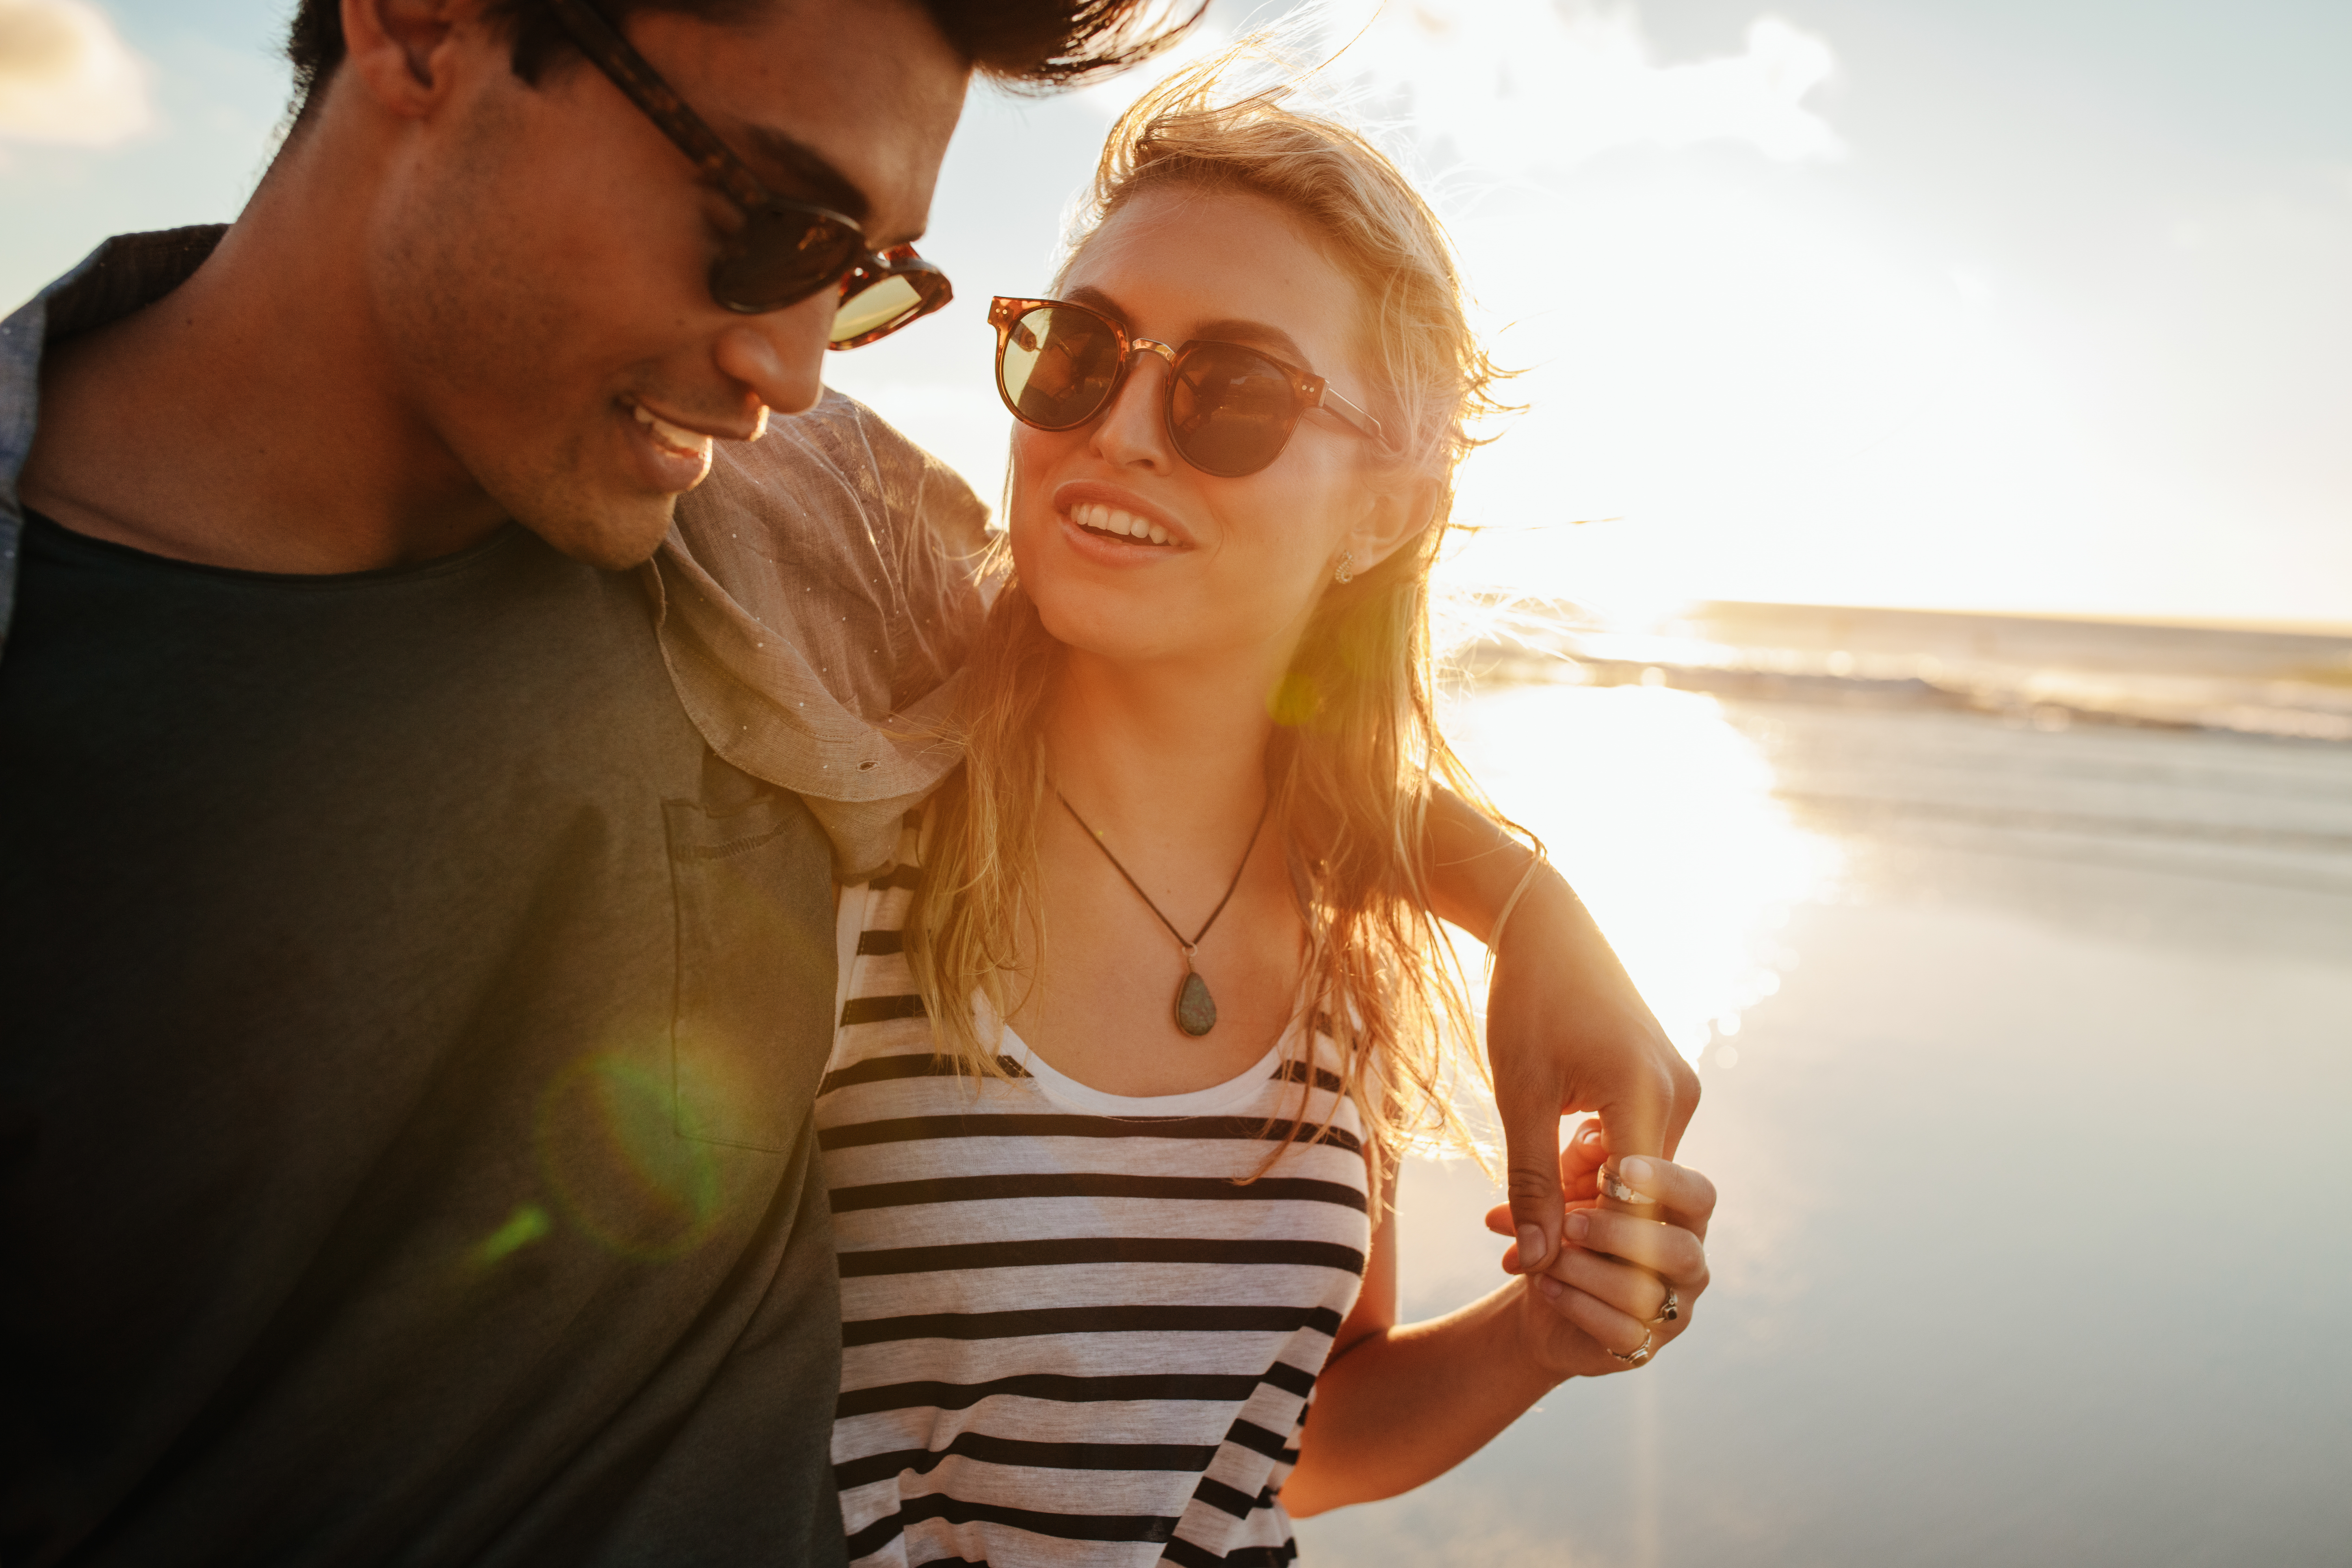 Man with arm around woman smiling on the beach